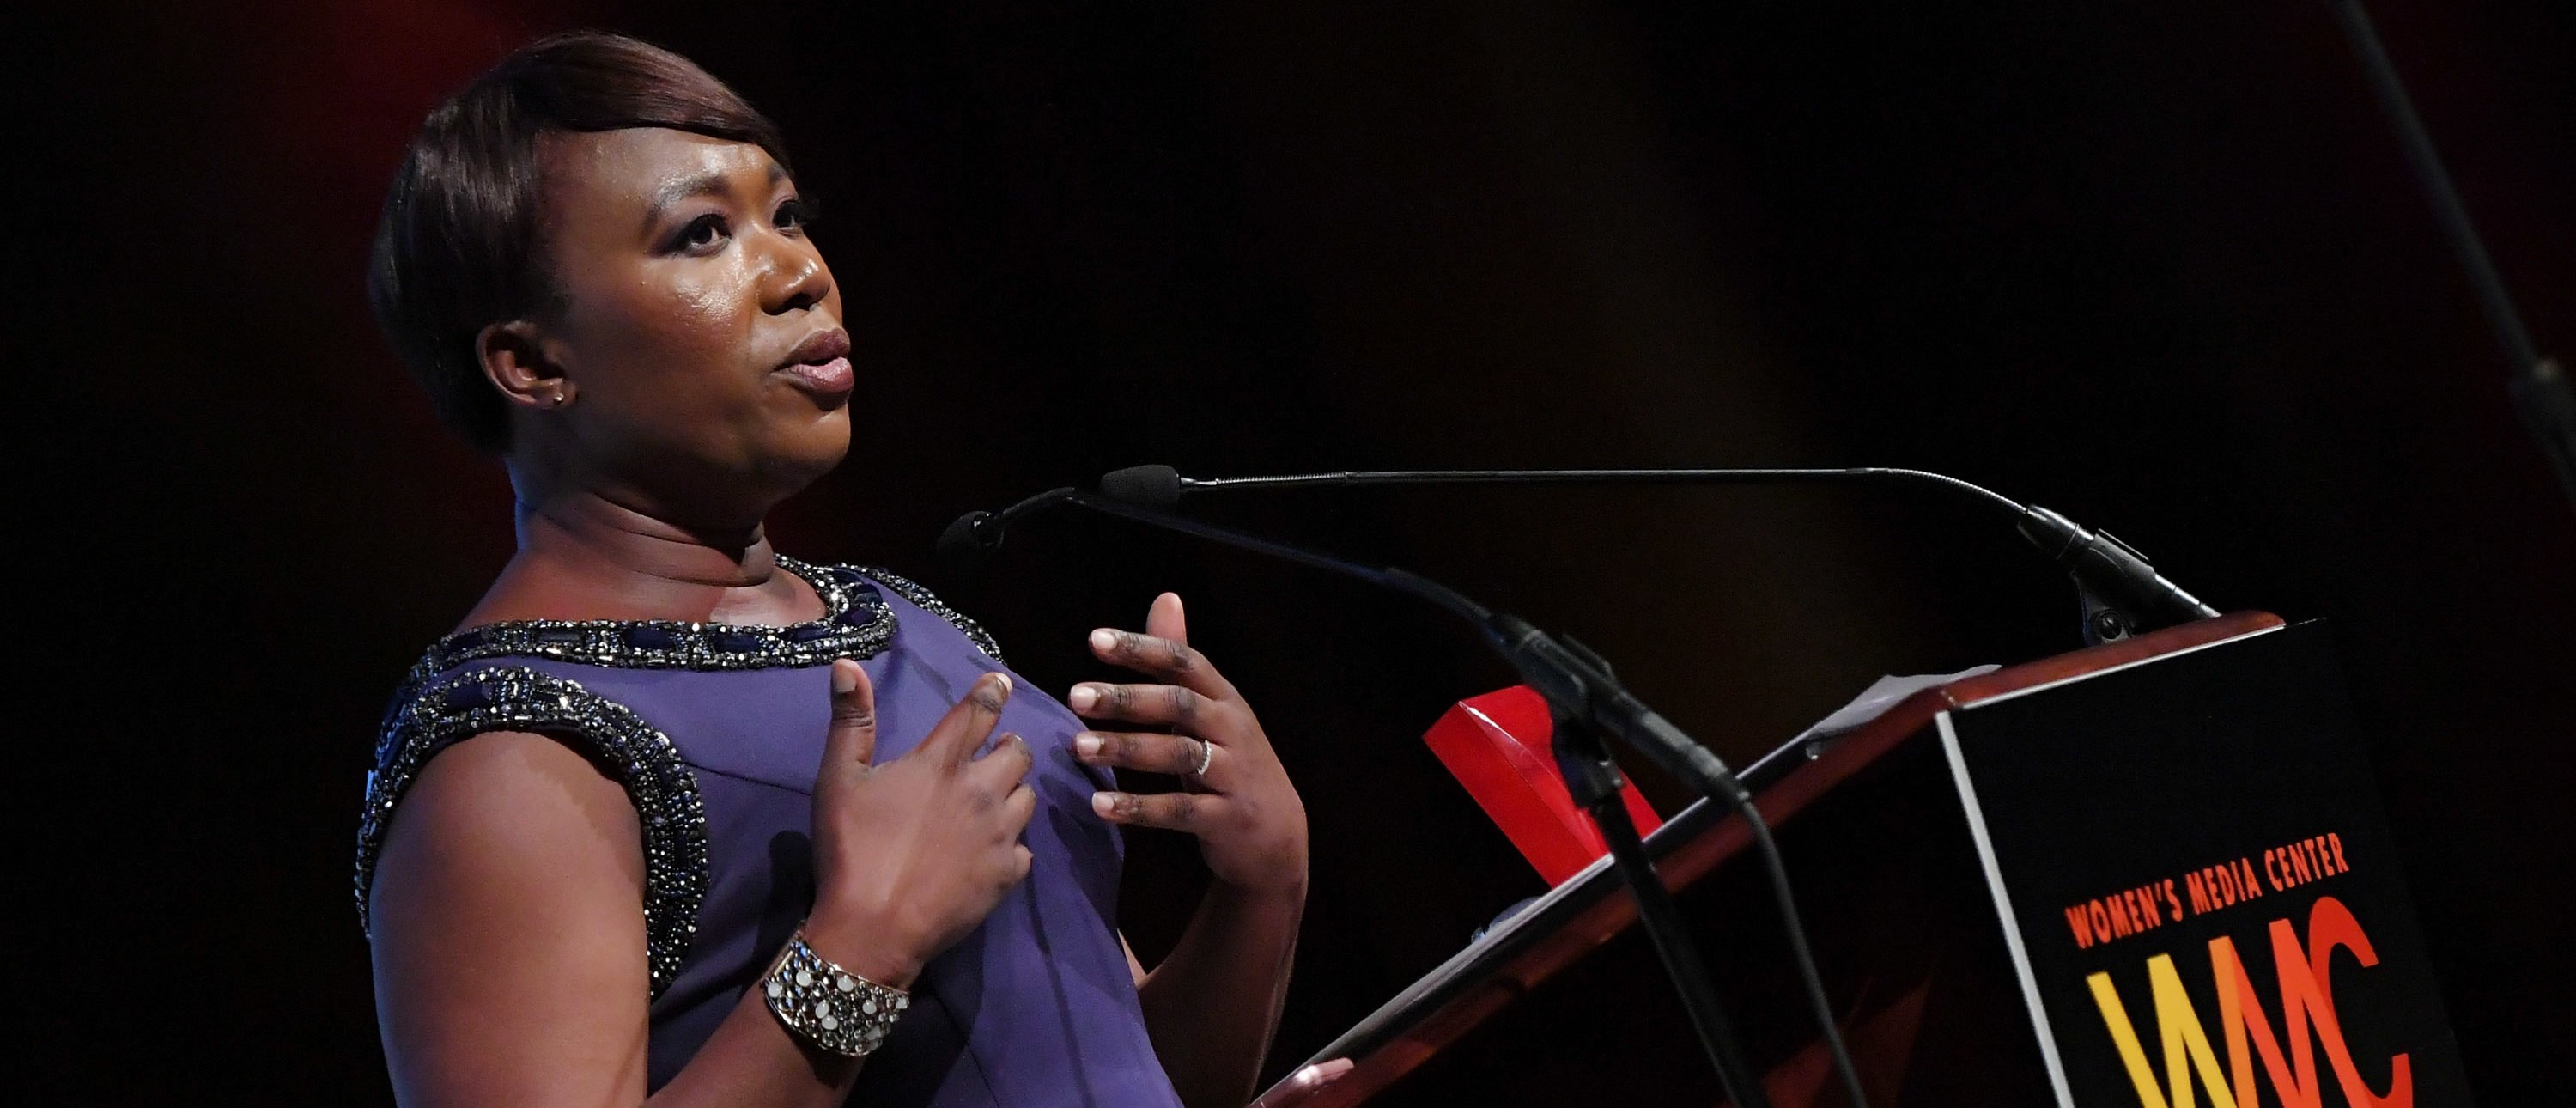 Correspondent and winner of the WMC Carol Jenkins Visible and Powerful Media Award, Joy Reid speaks onstage at the Women's Media Center 2016 Women's Media awards on September 29, 2016 in New York City. (Photo by Mike Coppola/Getty Images for The Women's Media Center)